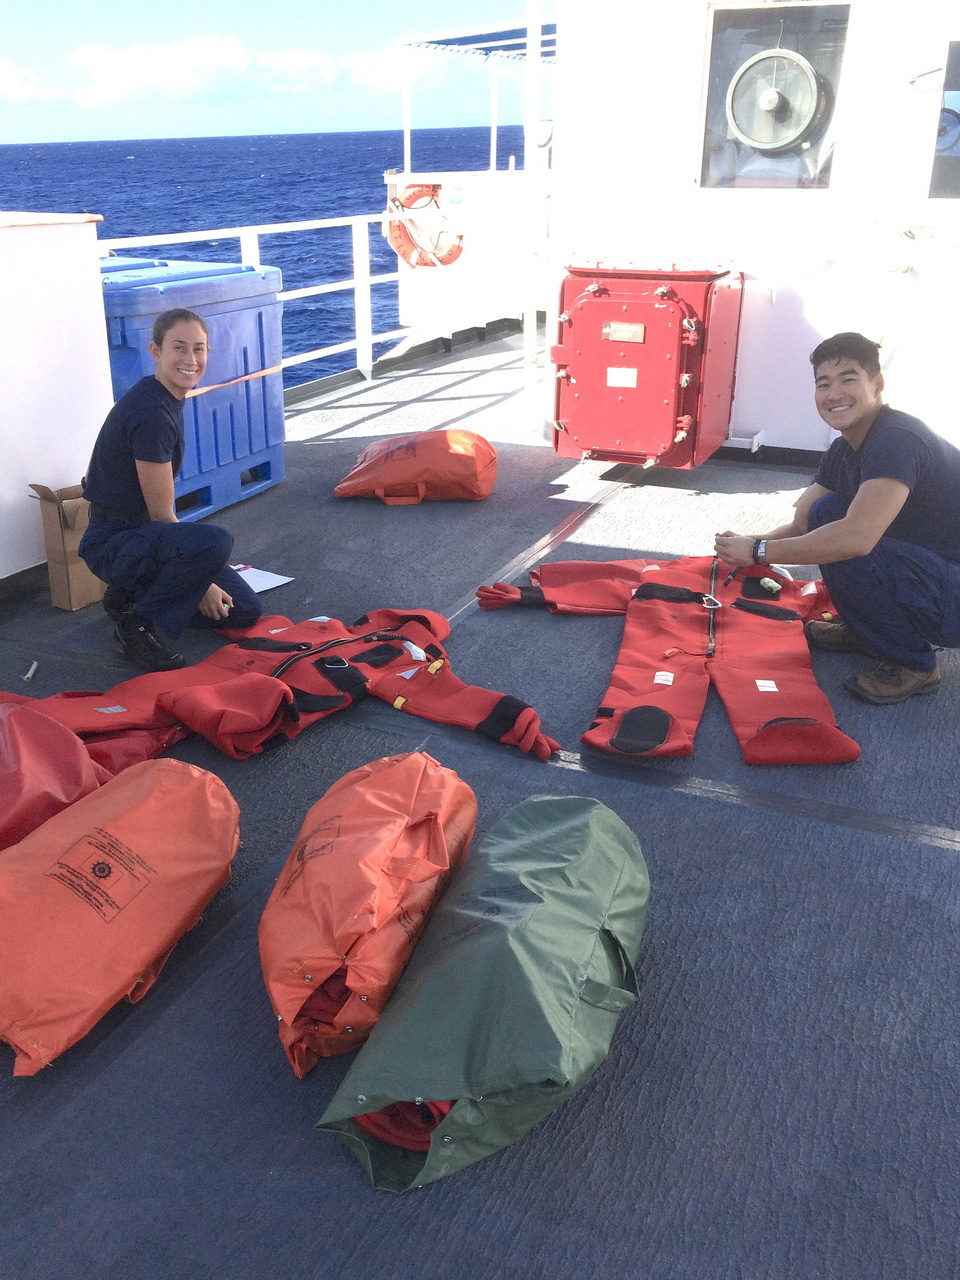 """Ensigns Moore and Park check the condition of survival suits (a.k.a. """"gumby suits"""") before a weekly abandon ship drill. Photo: NOAA Fisheries/Suzanne Yin."""